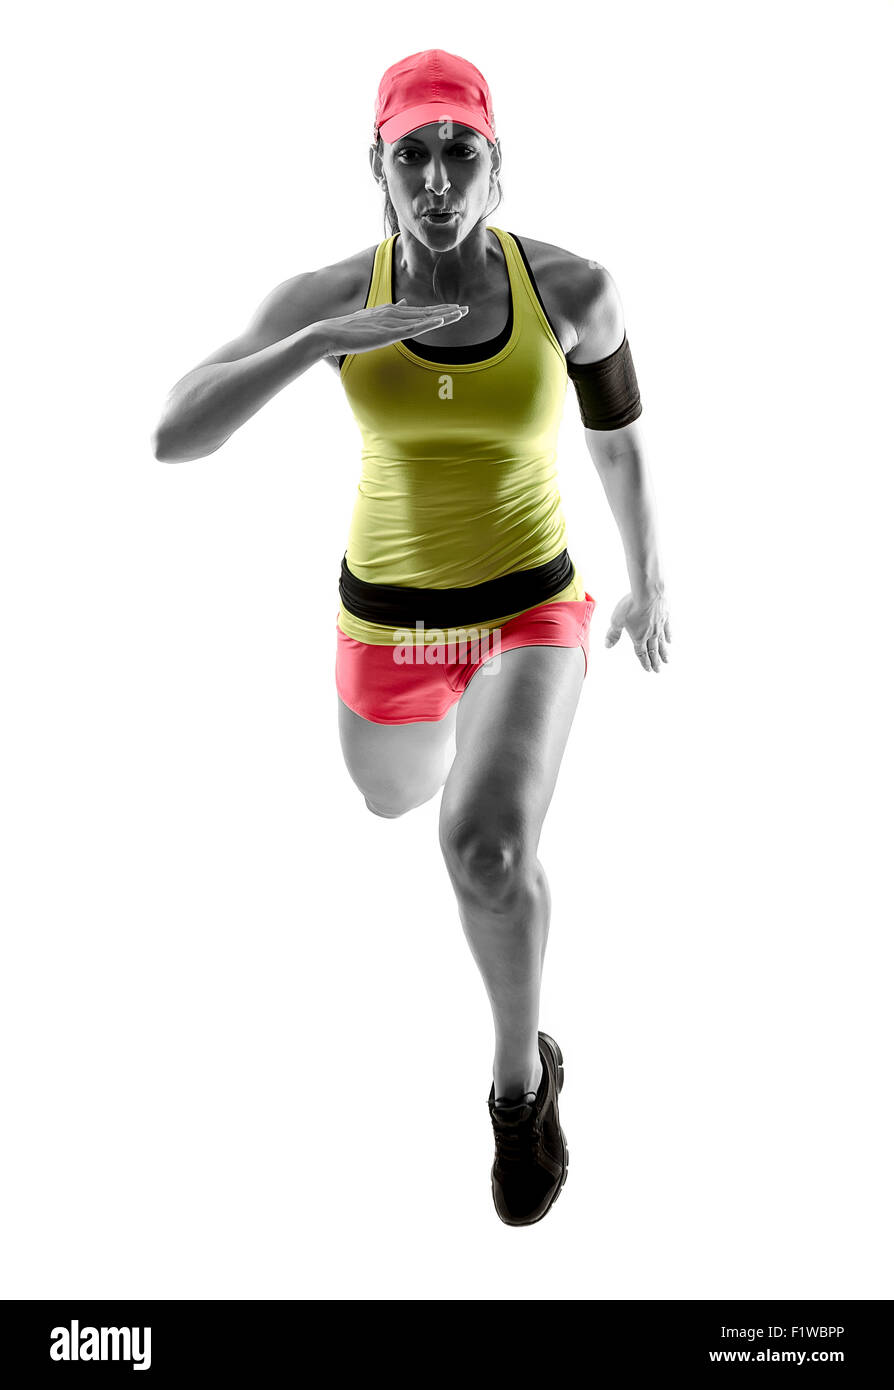 Runner woman's silhouette in action. Studio shot. - Stock Image